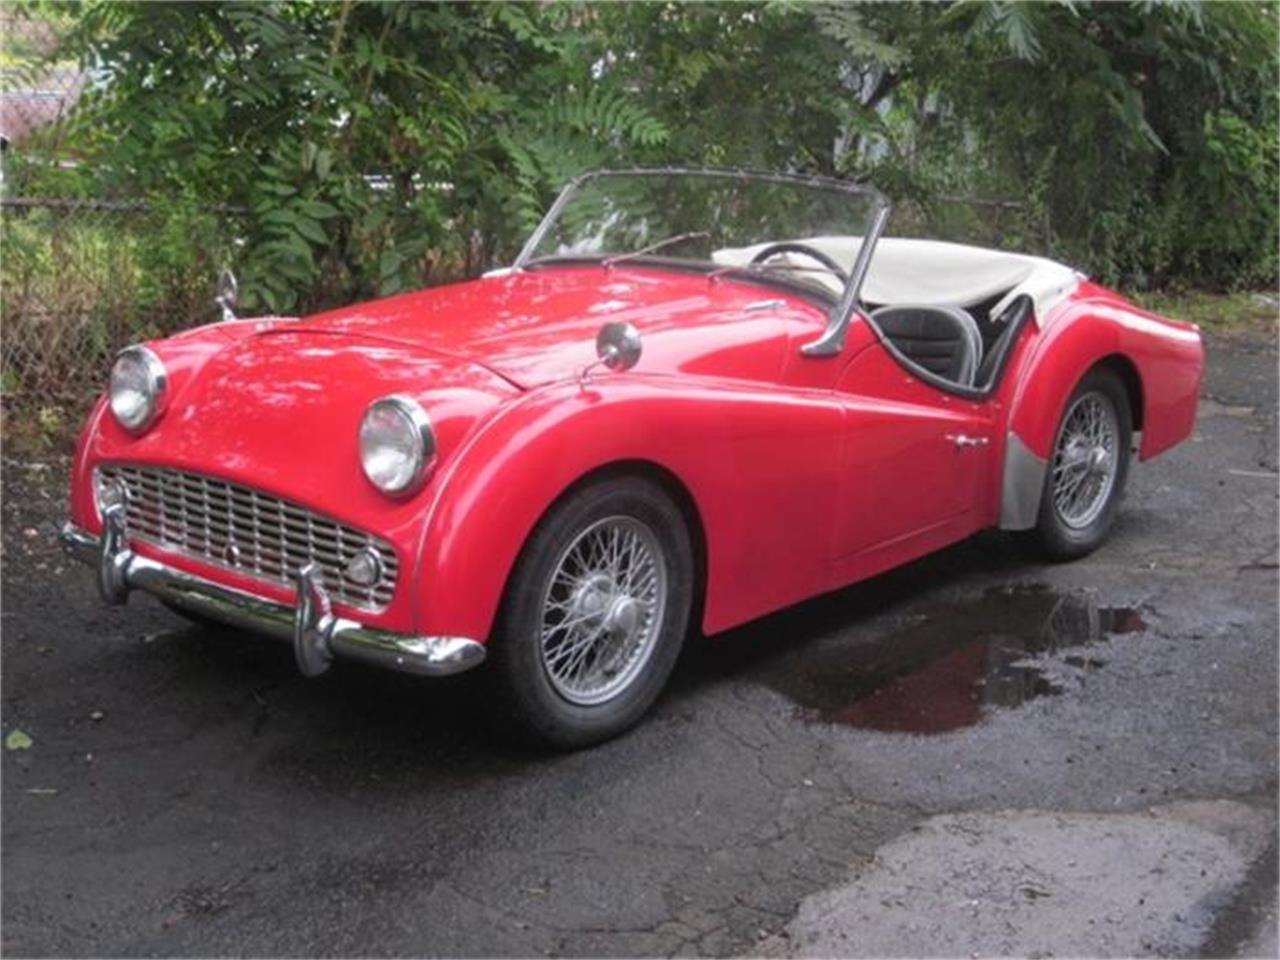 Large Picture of 1960 Triumph TR3A located in Connecticut - $23,900.00 - F3WU